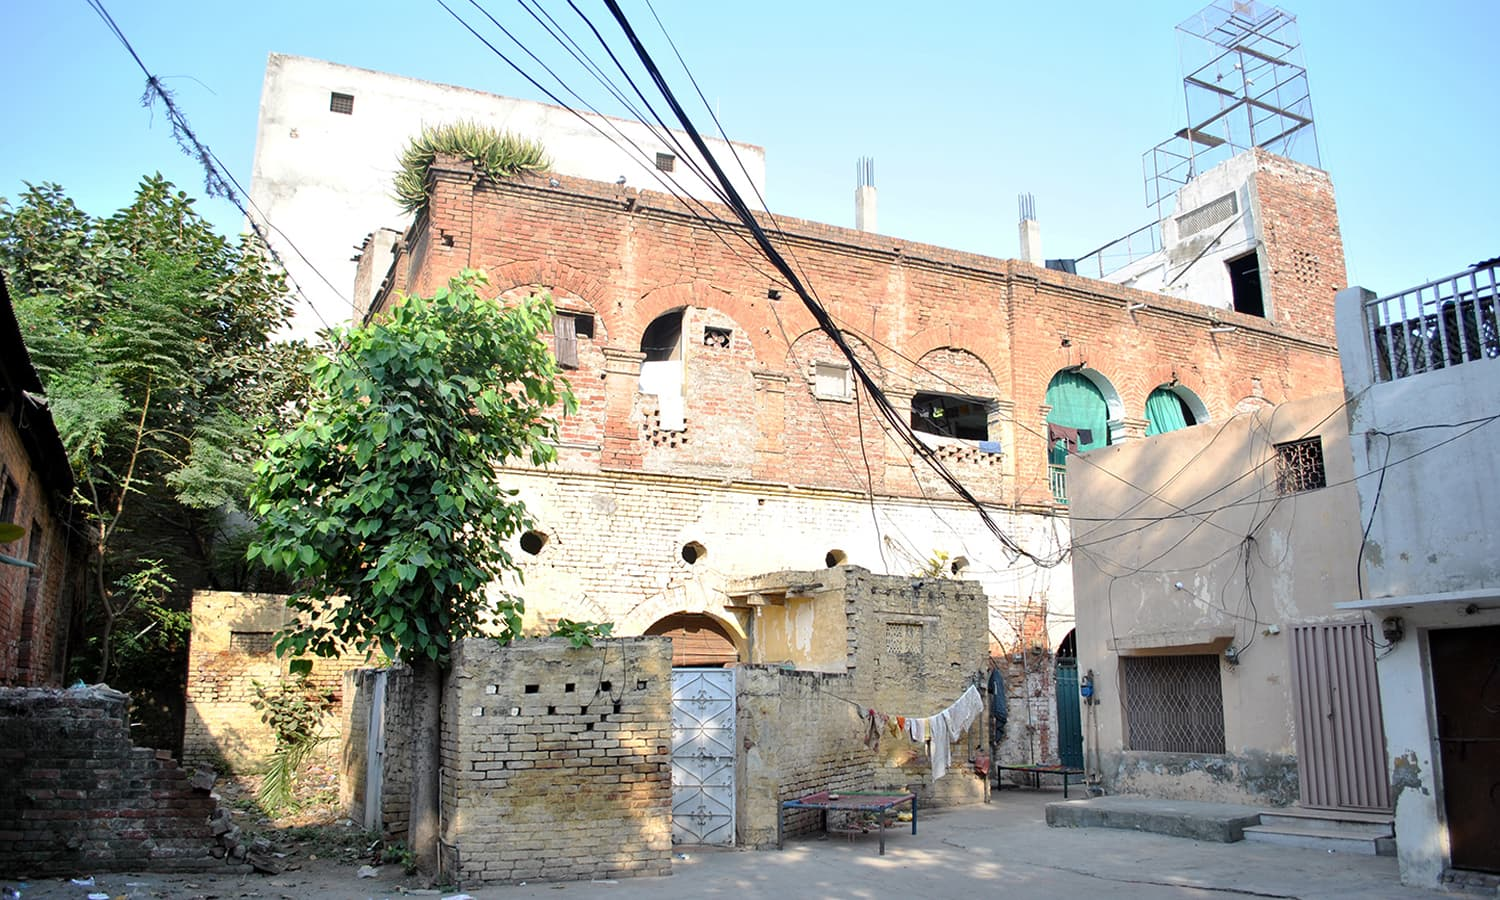 Under the Milli Techniki Idara (National Technical Institute), land grabbing and illegal encroachments were rampant.